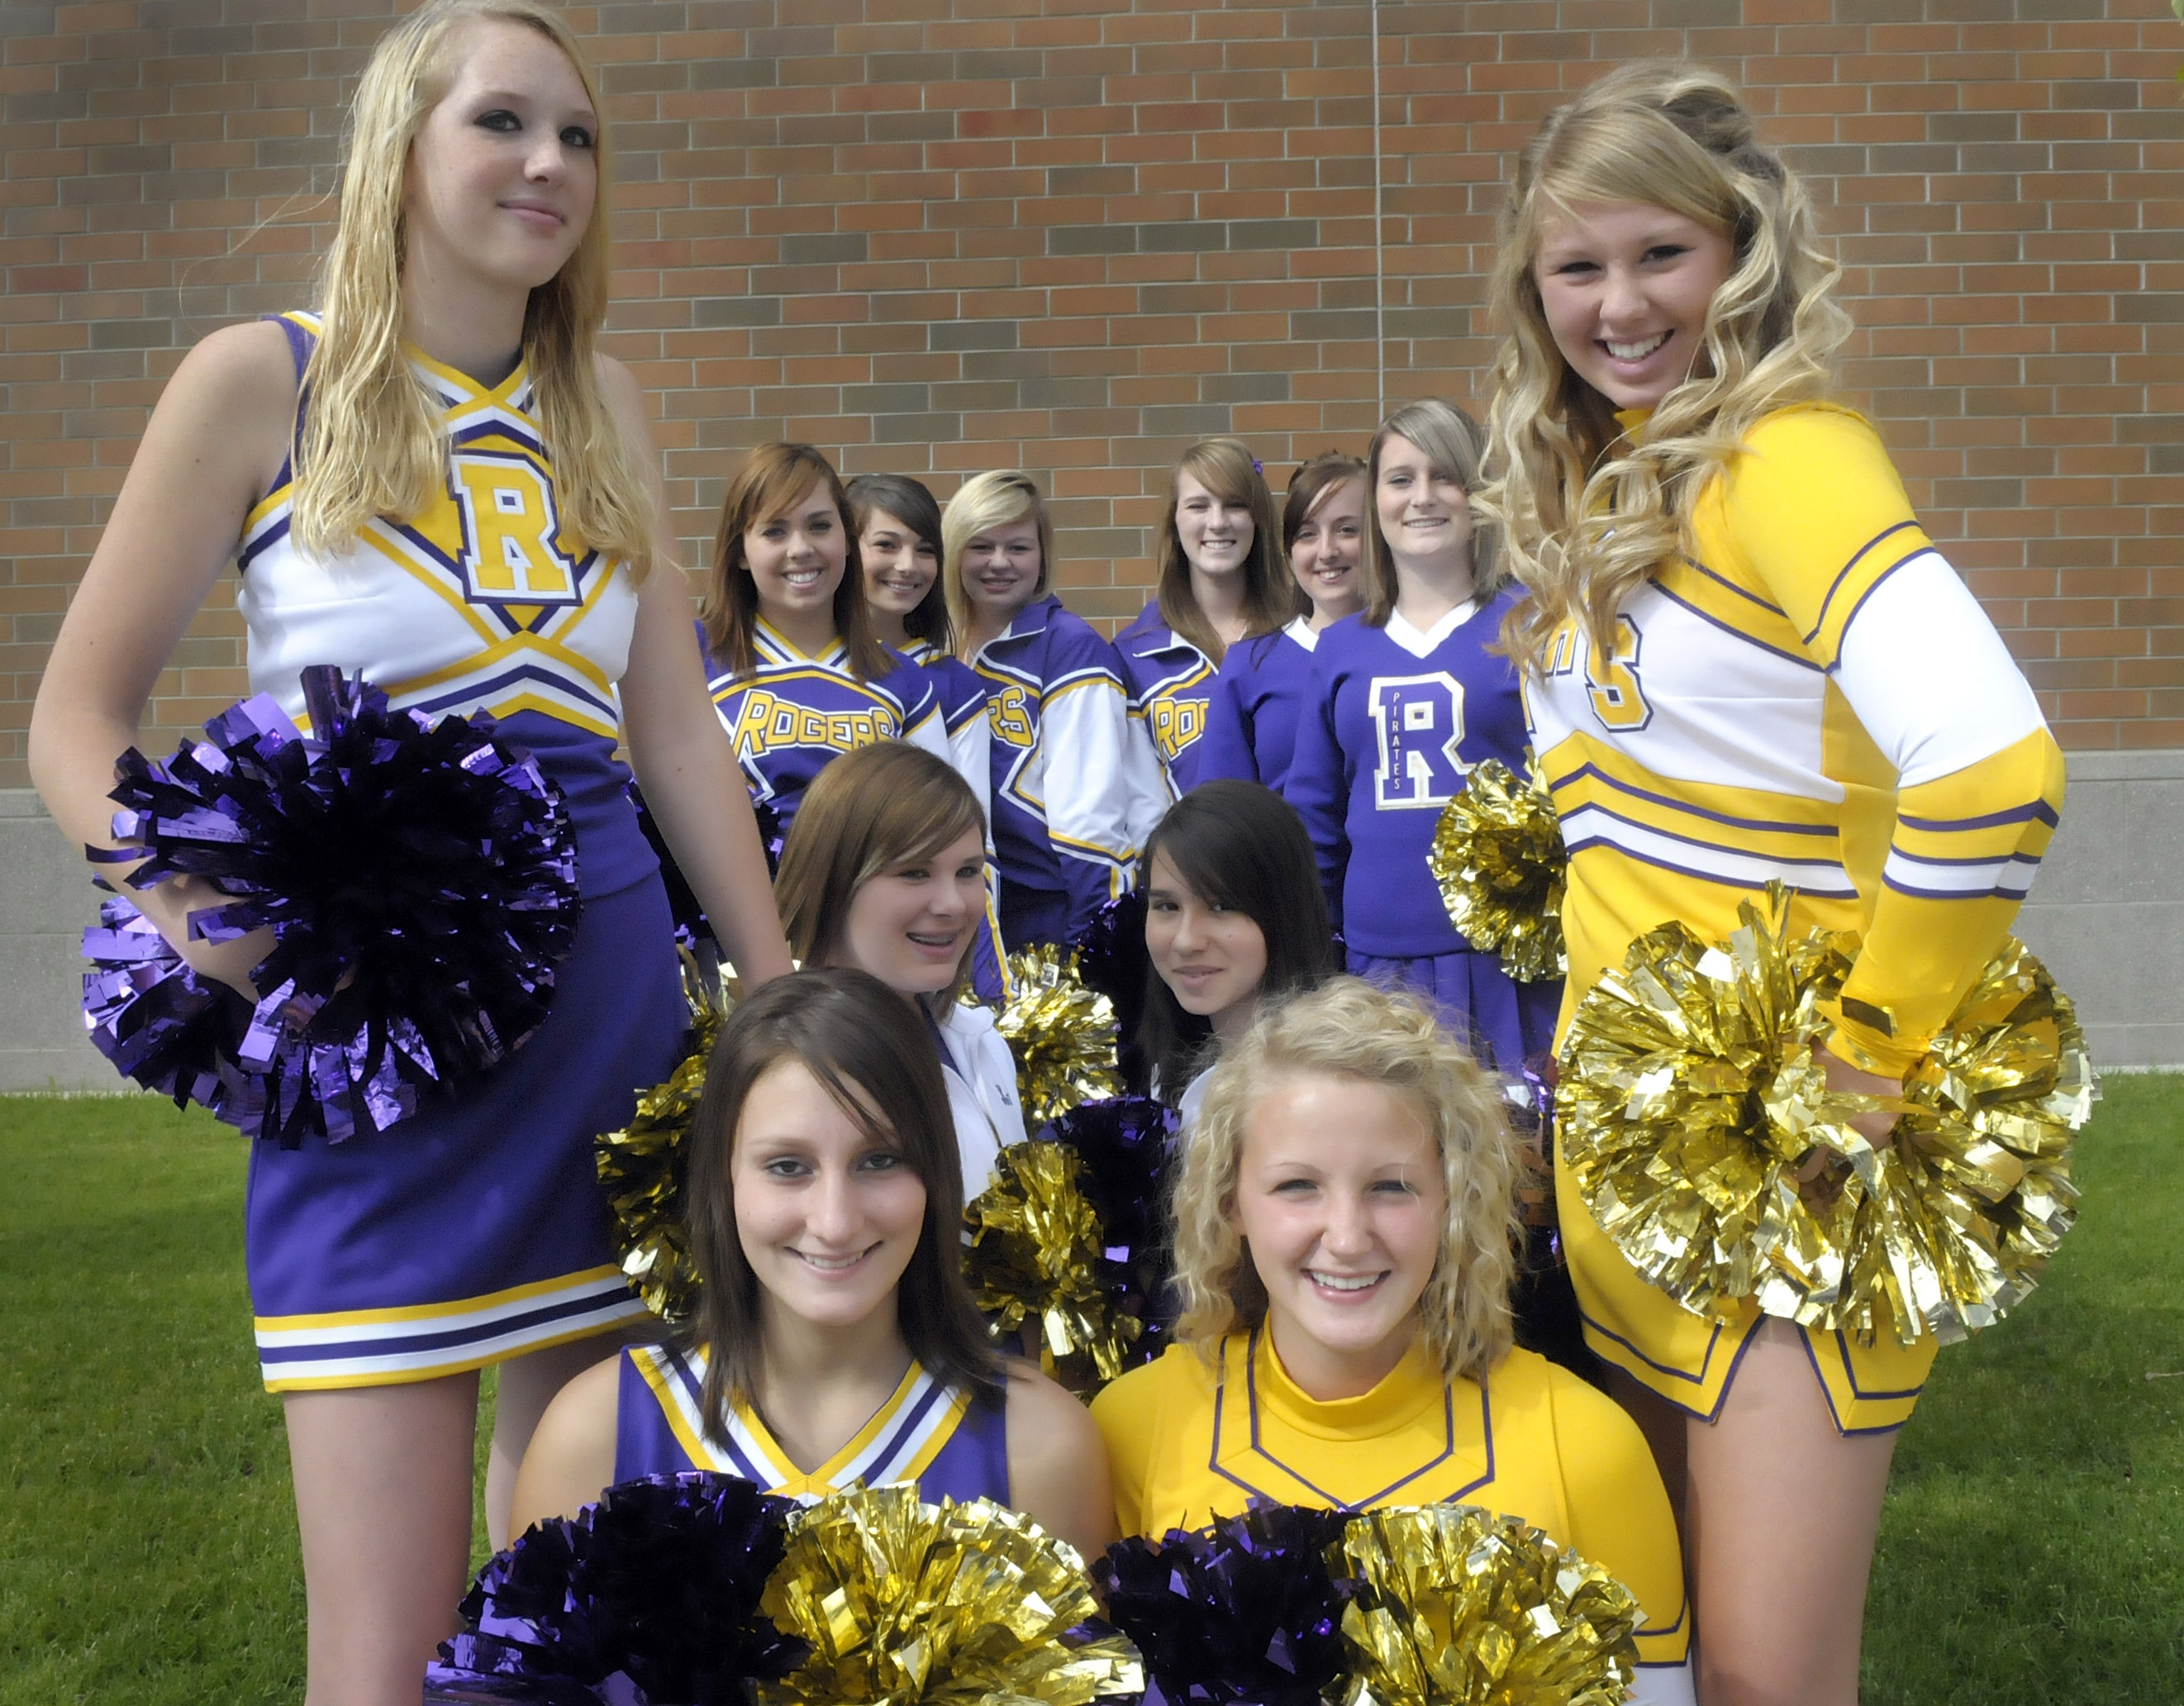 d287dd3fd The Rogers high School cheerleading squad has new uniforms for the upcoming  year. Showing off